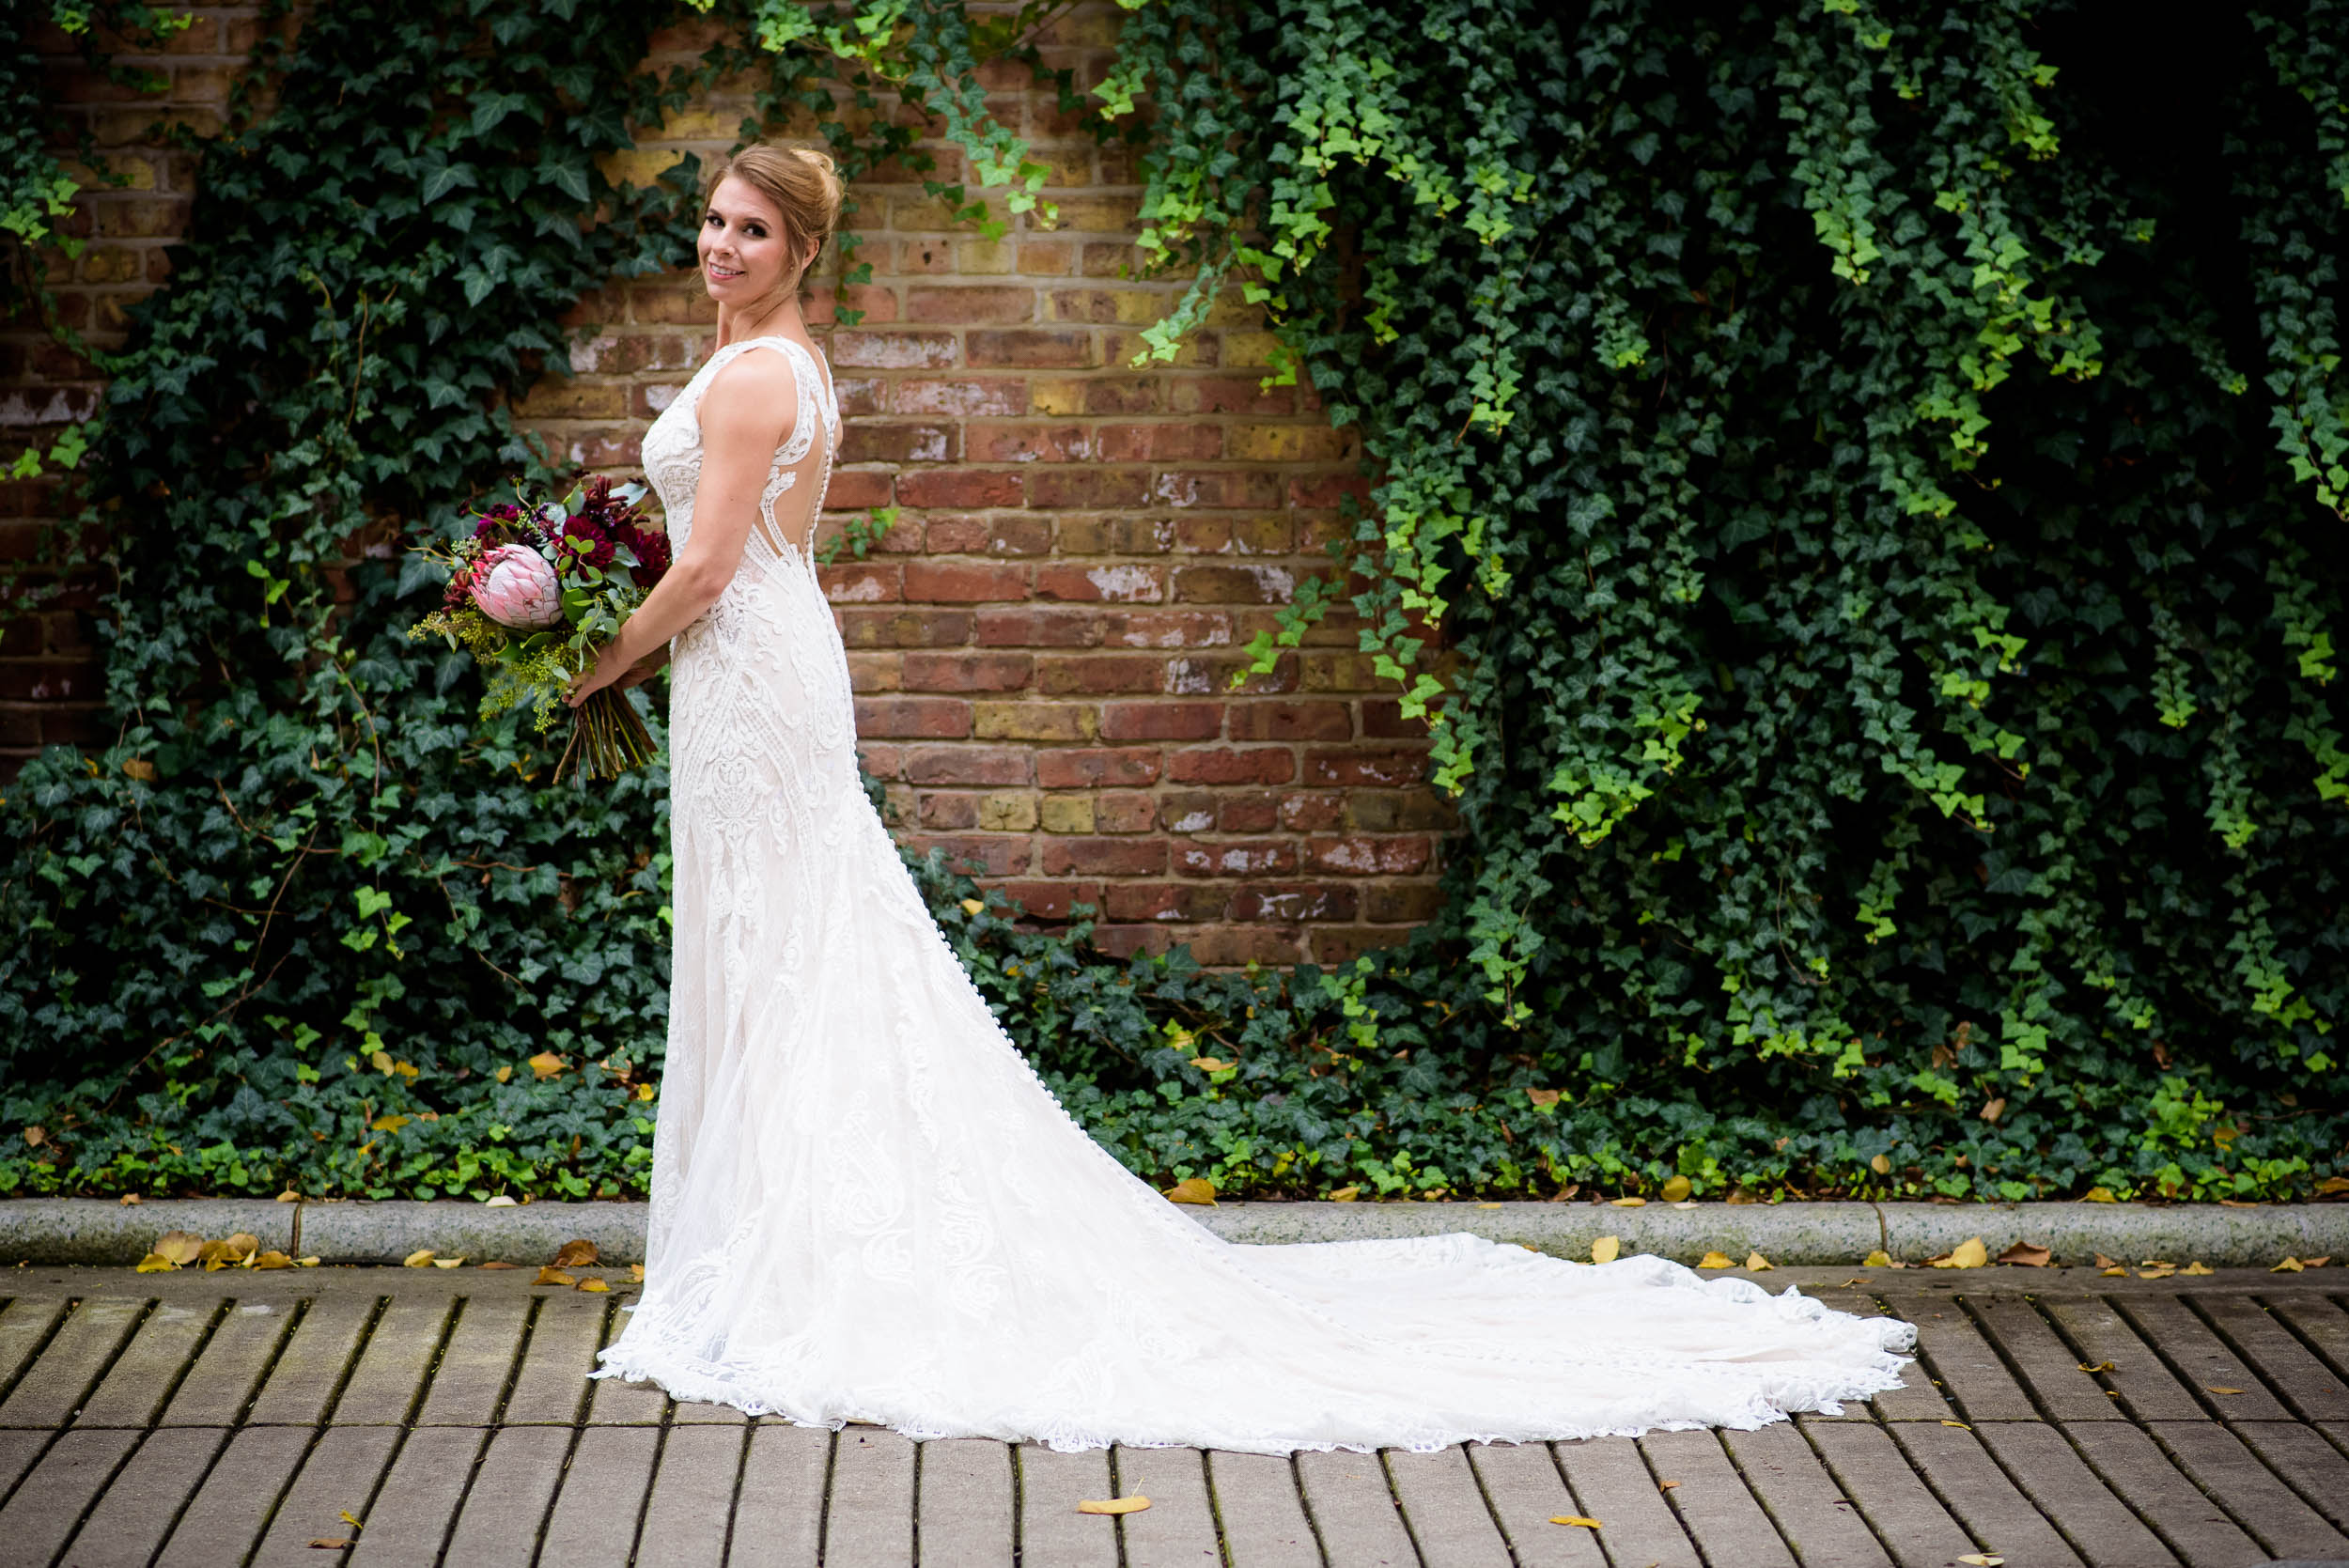 Bridal portrait during a Glessner House Chicago wedding.